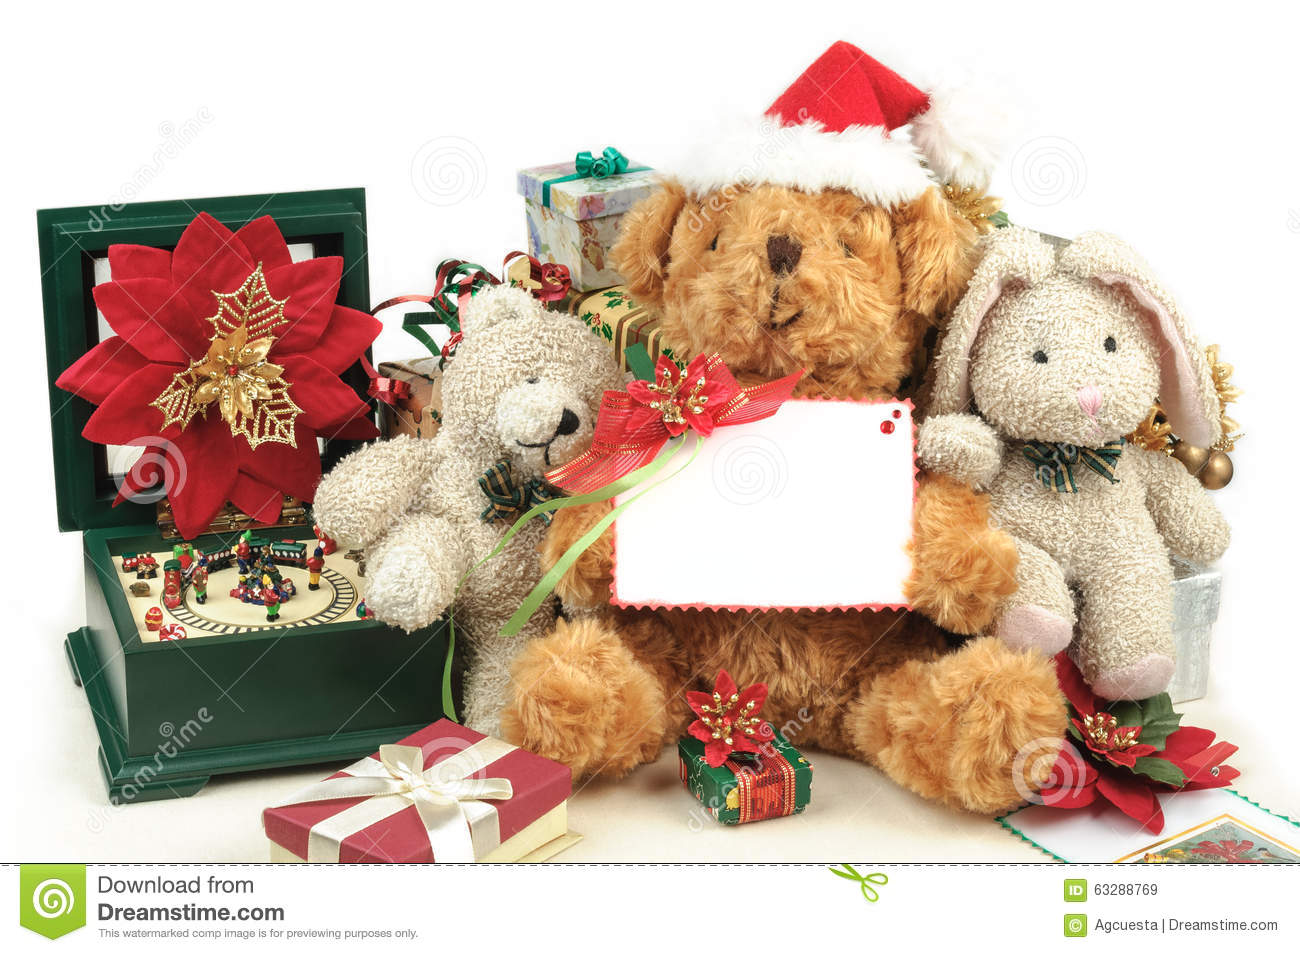 Christmas Teddy Bear With Gifts And Friends Stock Image - Image of ...